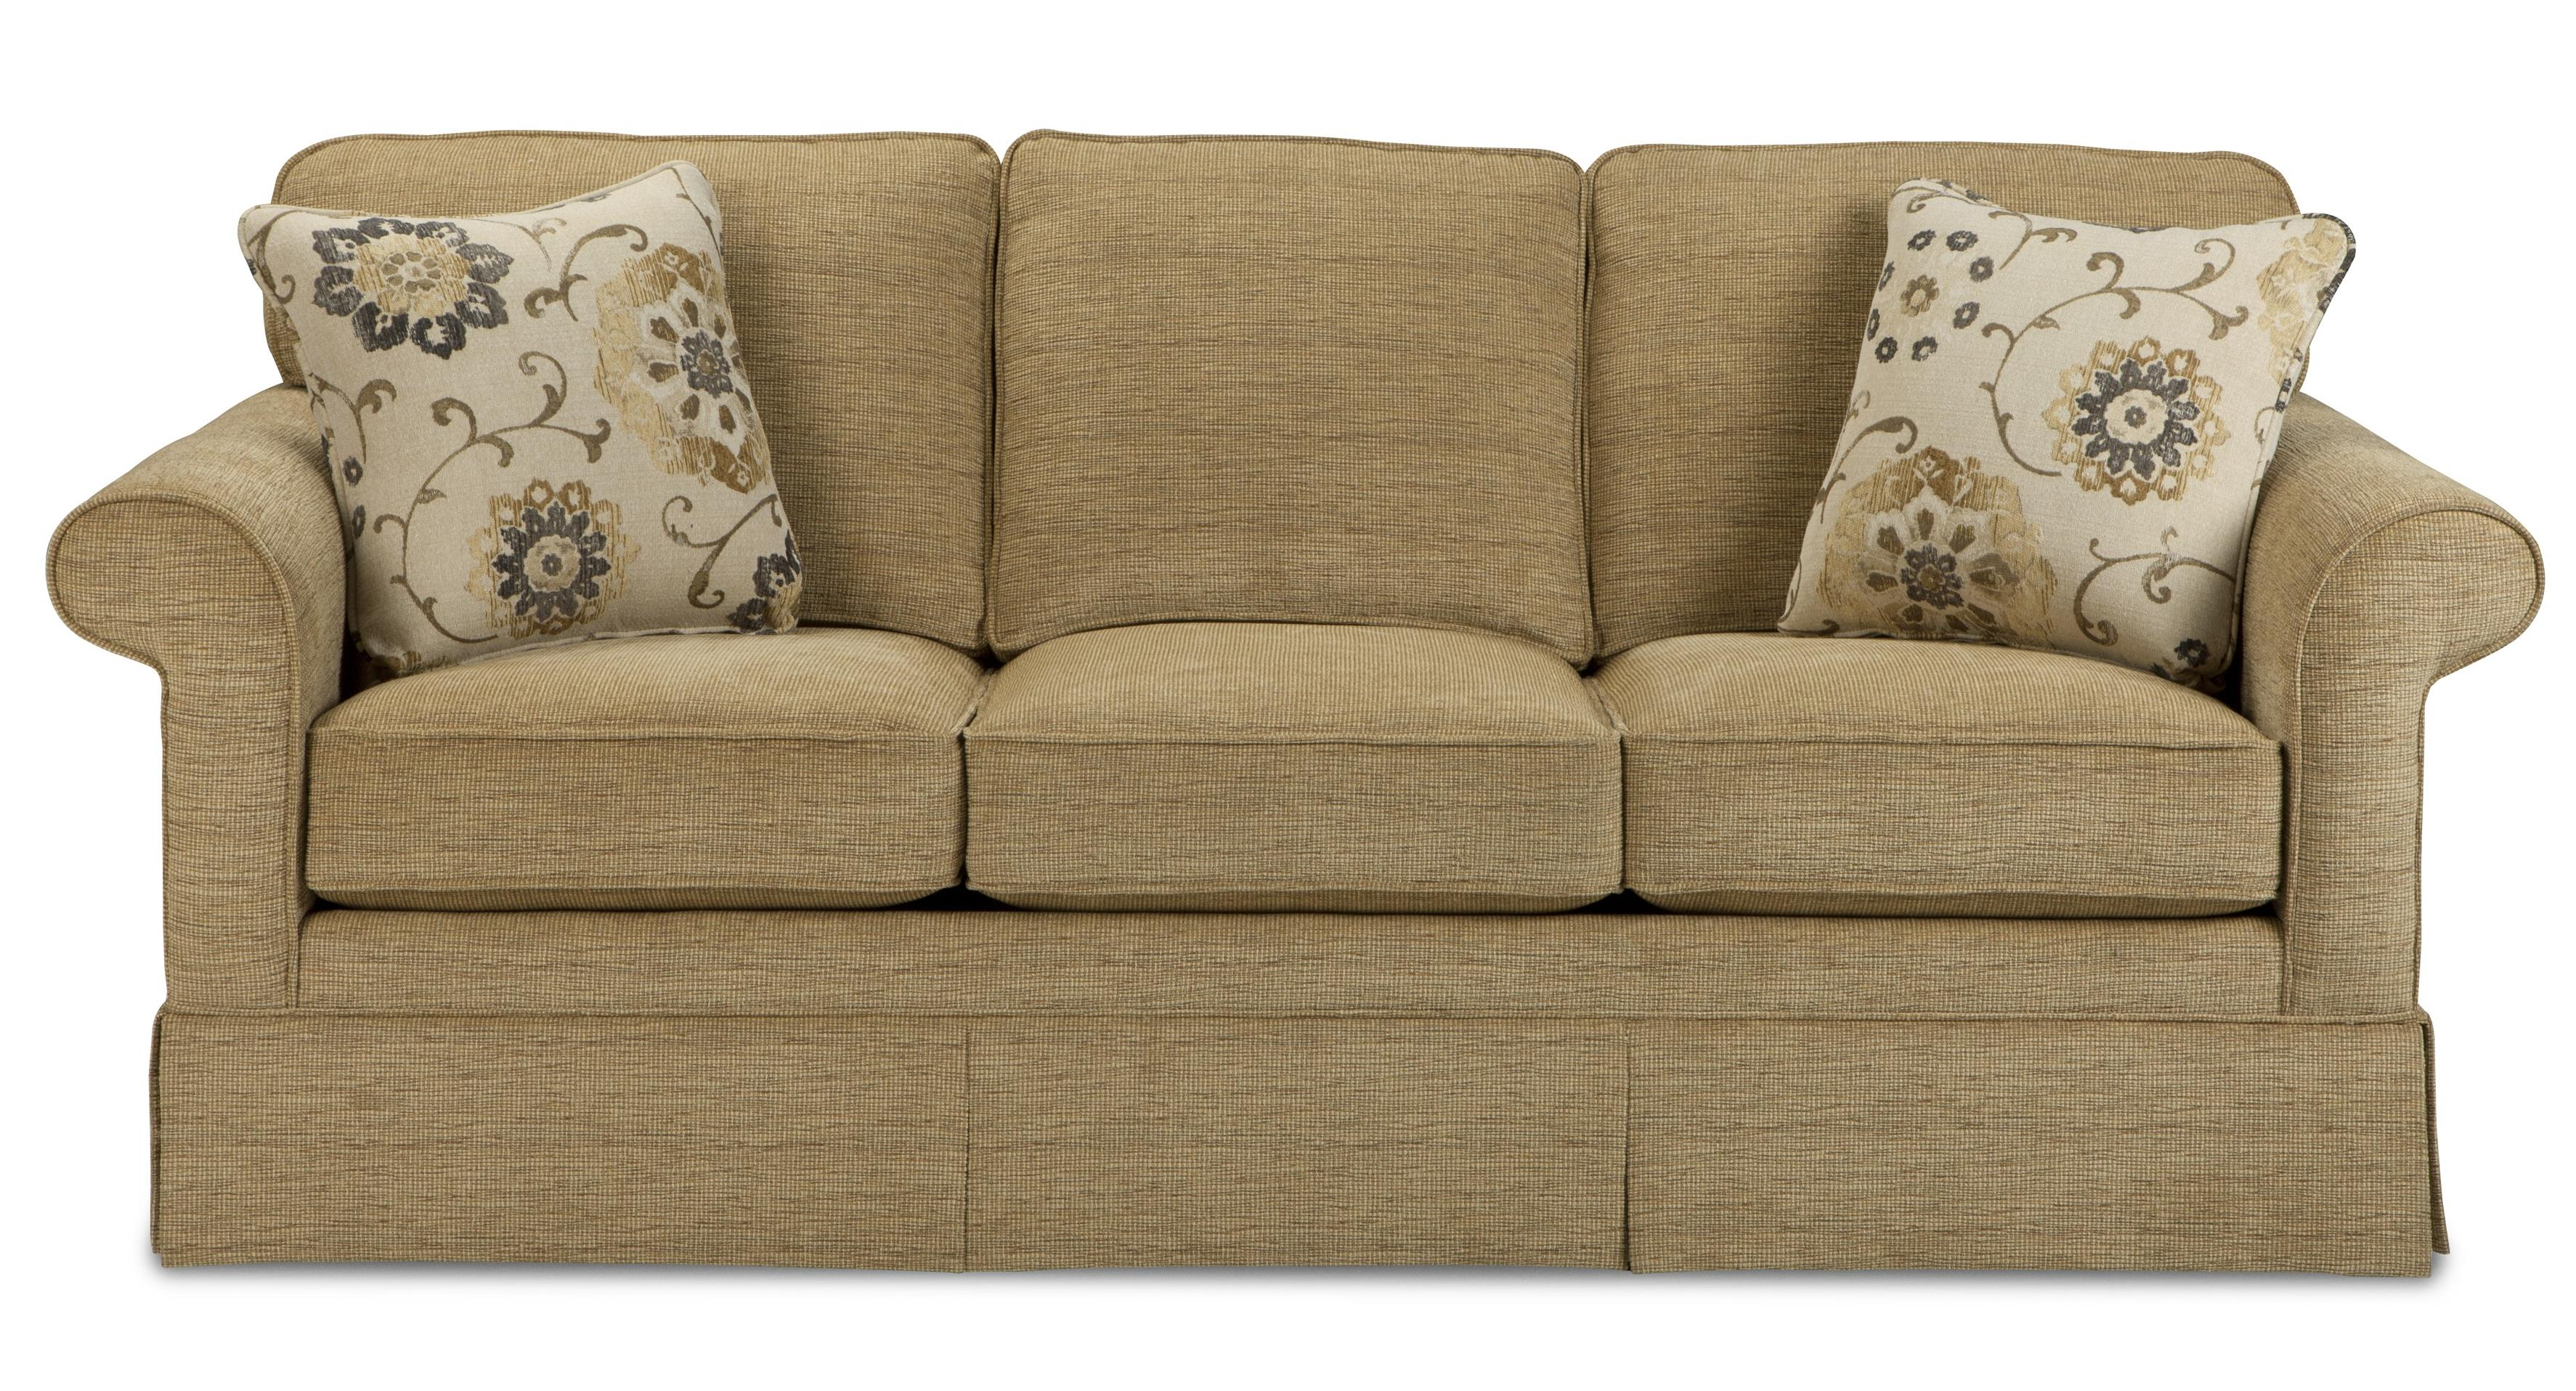 Superb Traditional Sleeper Sofa With Kick Pleat Skirt